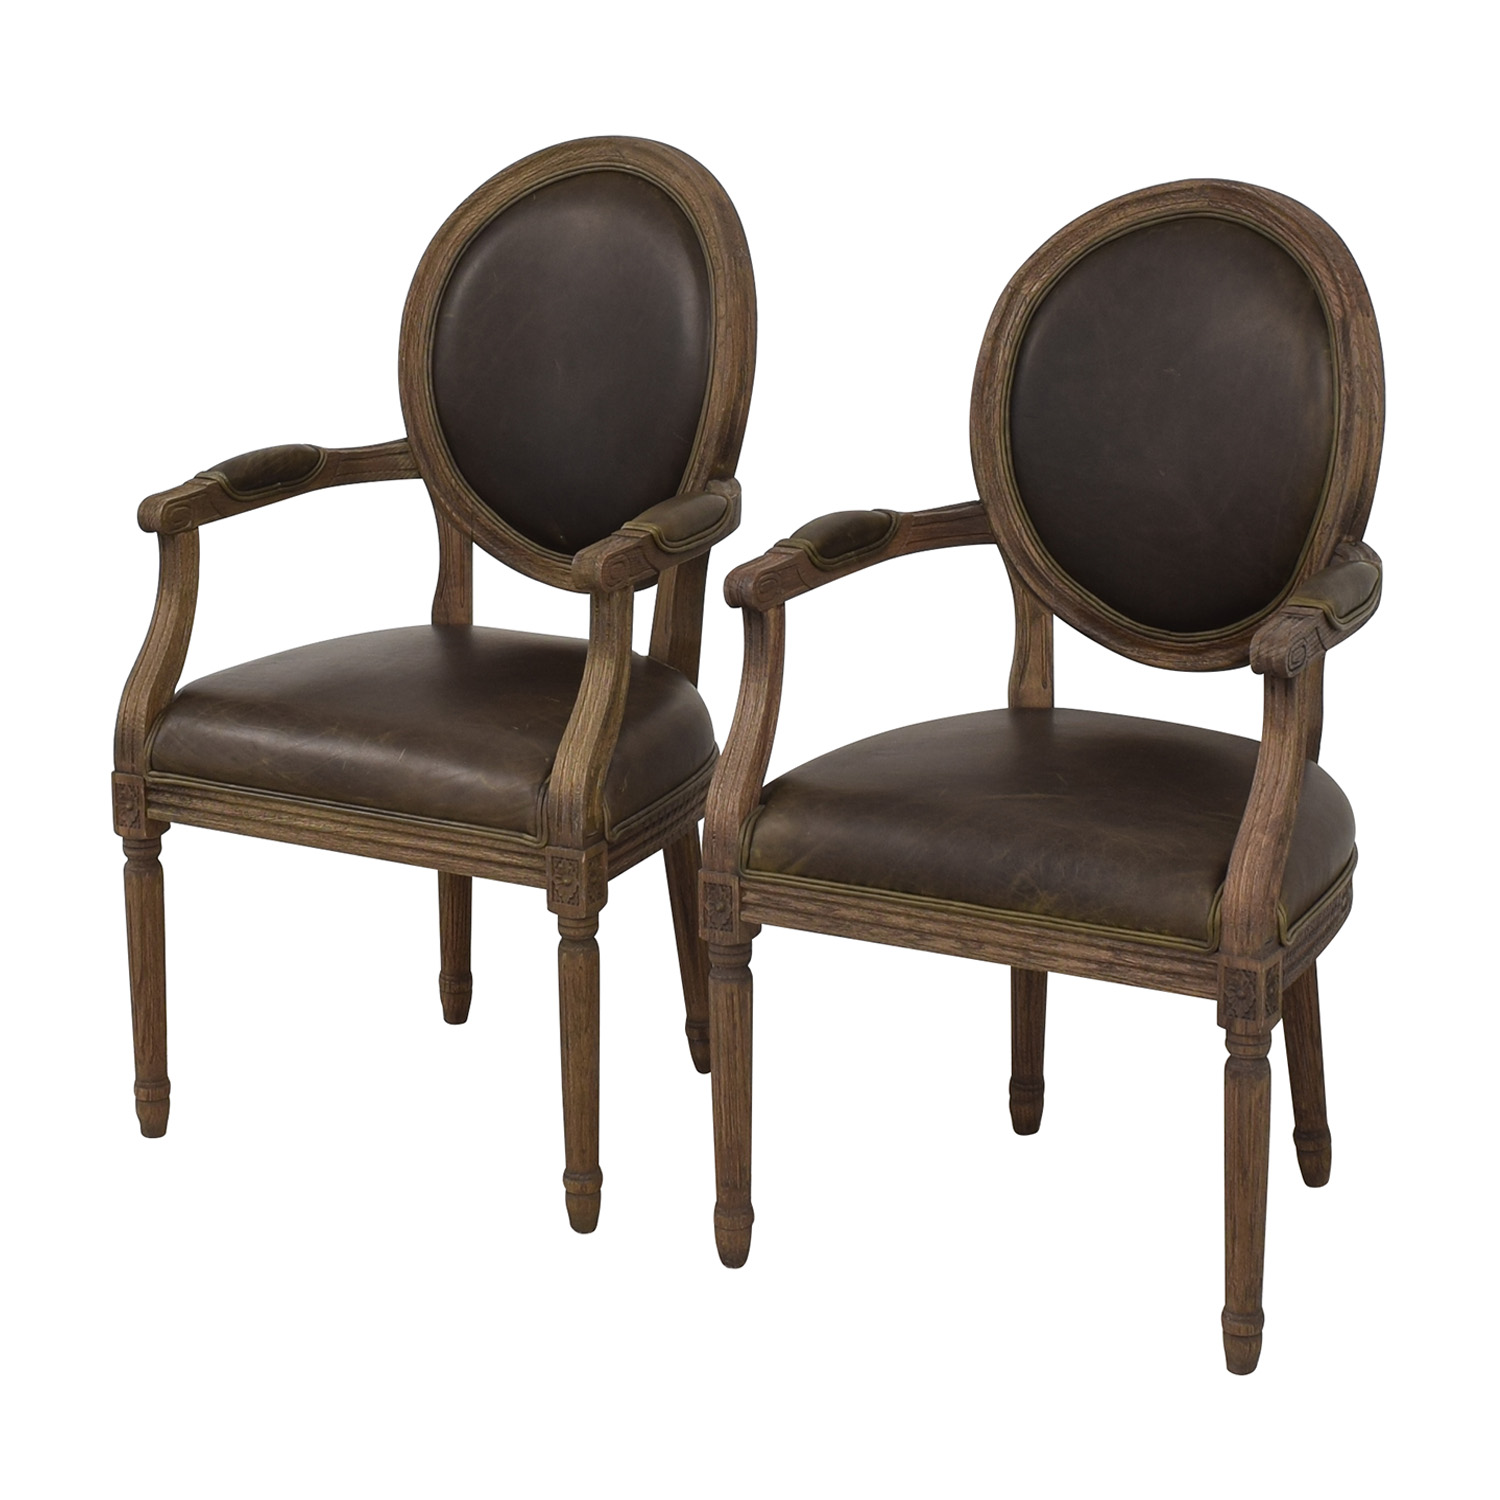 Restoration Hardware Restoration Hardware Vintage French Round Leather Armchairs for sale